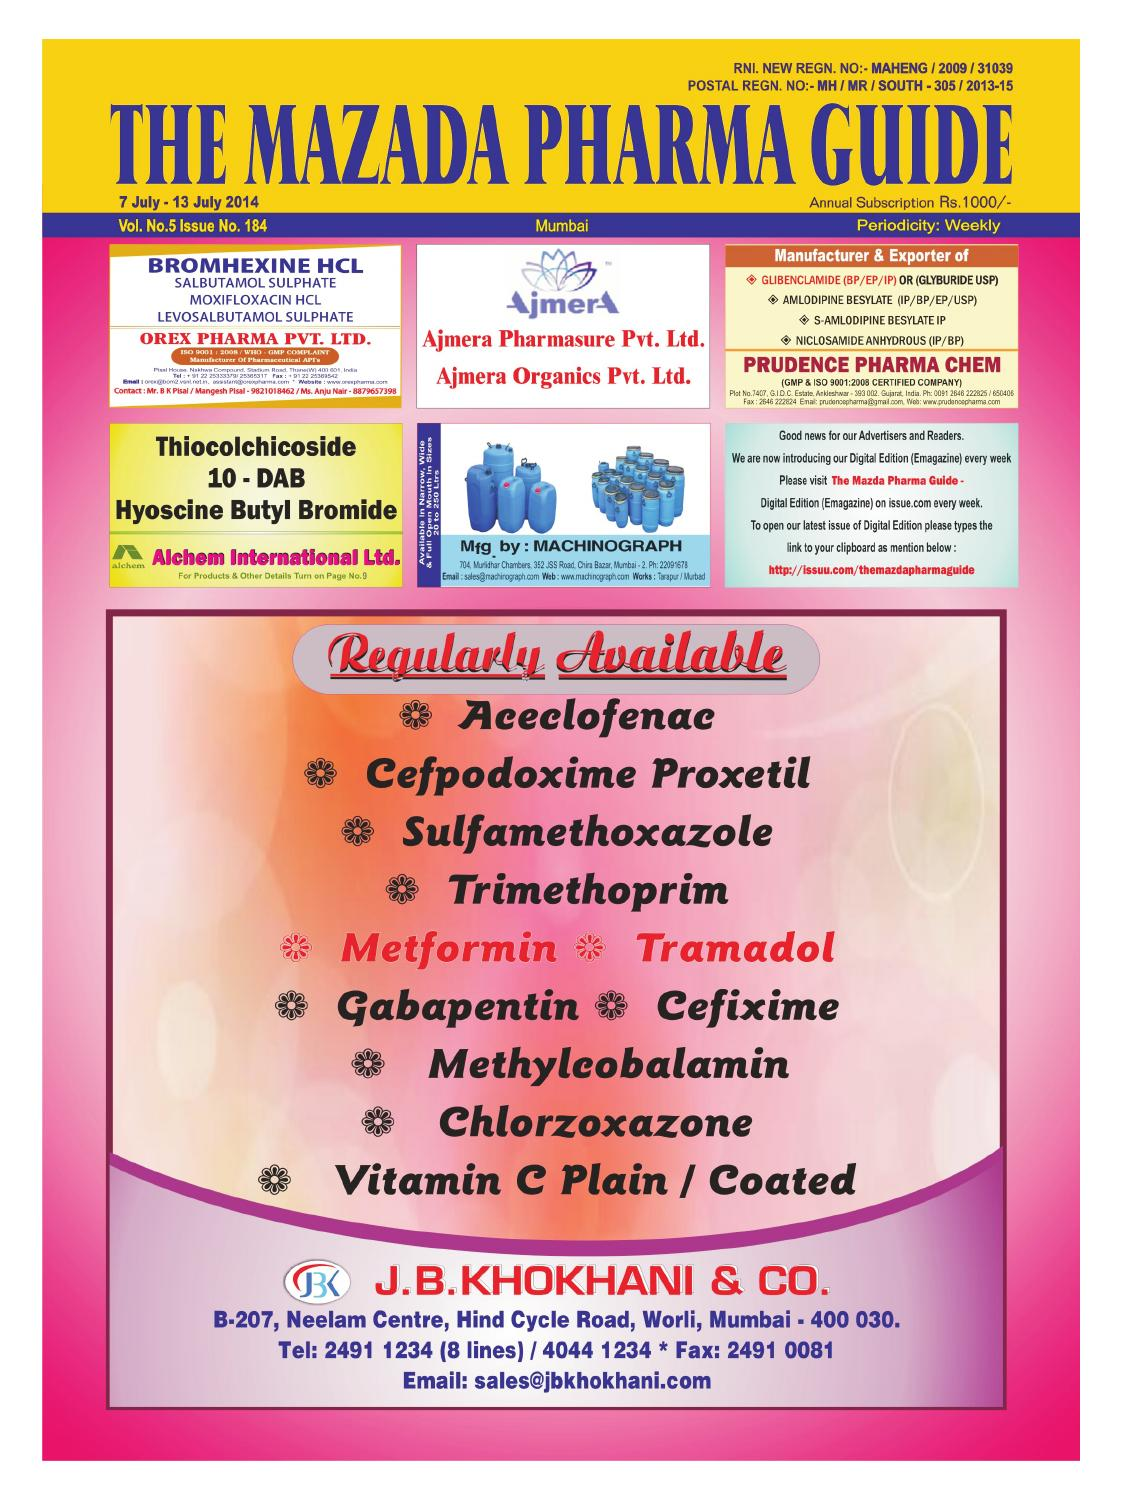 The Mazada Pharma Guide 7th july - 13th july 2014 by The